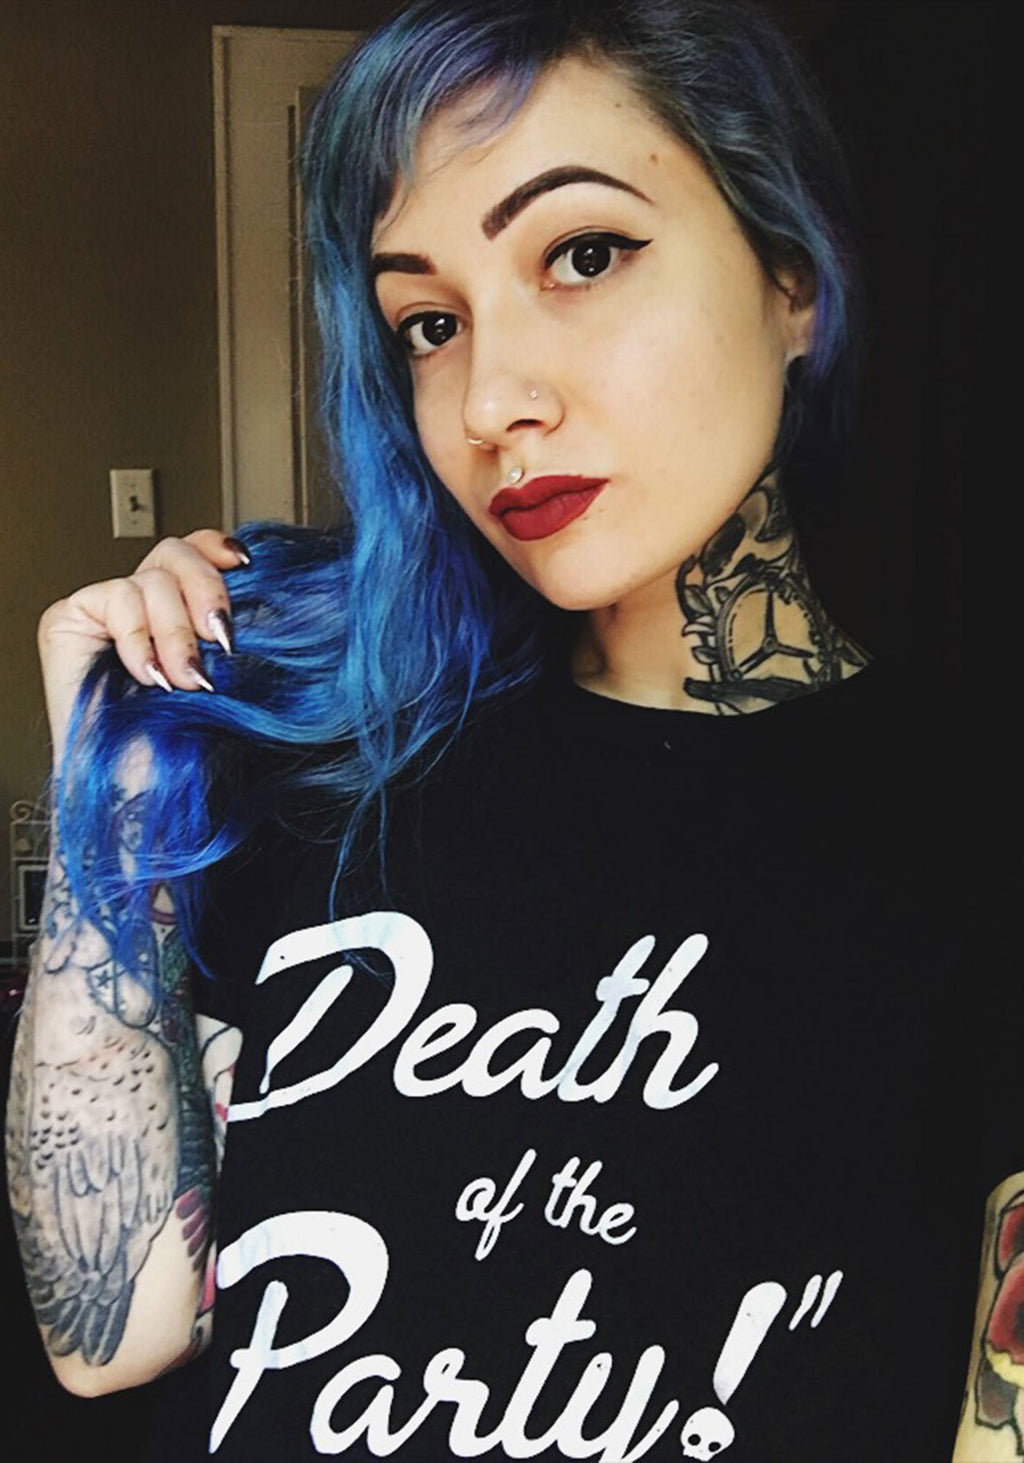 Death of the Party! Tee